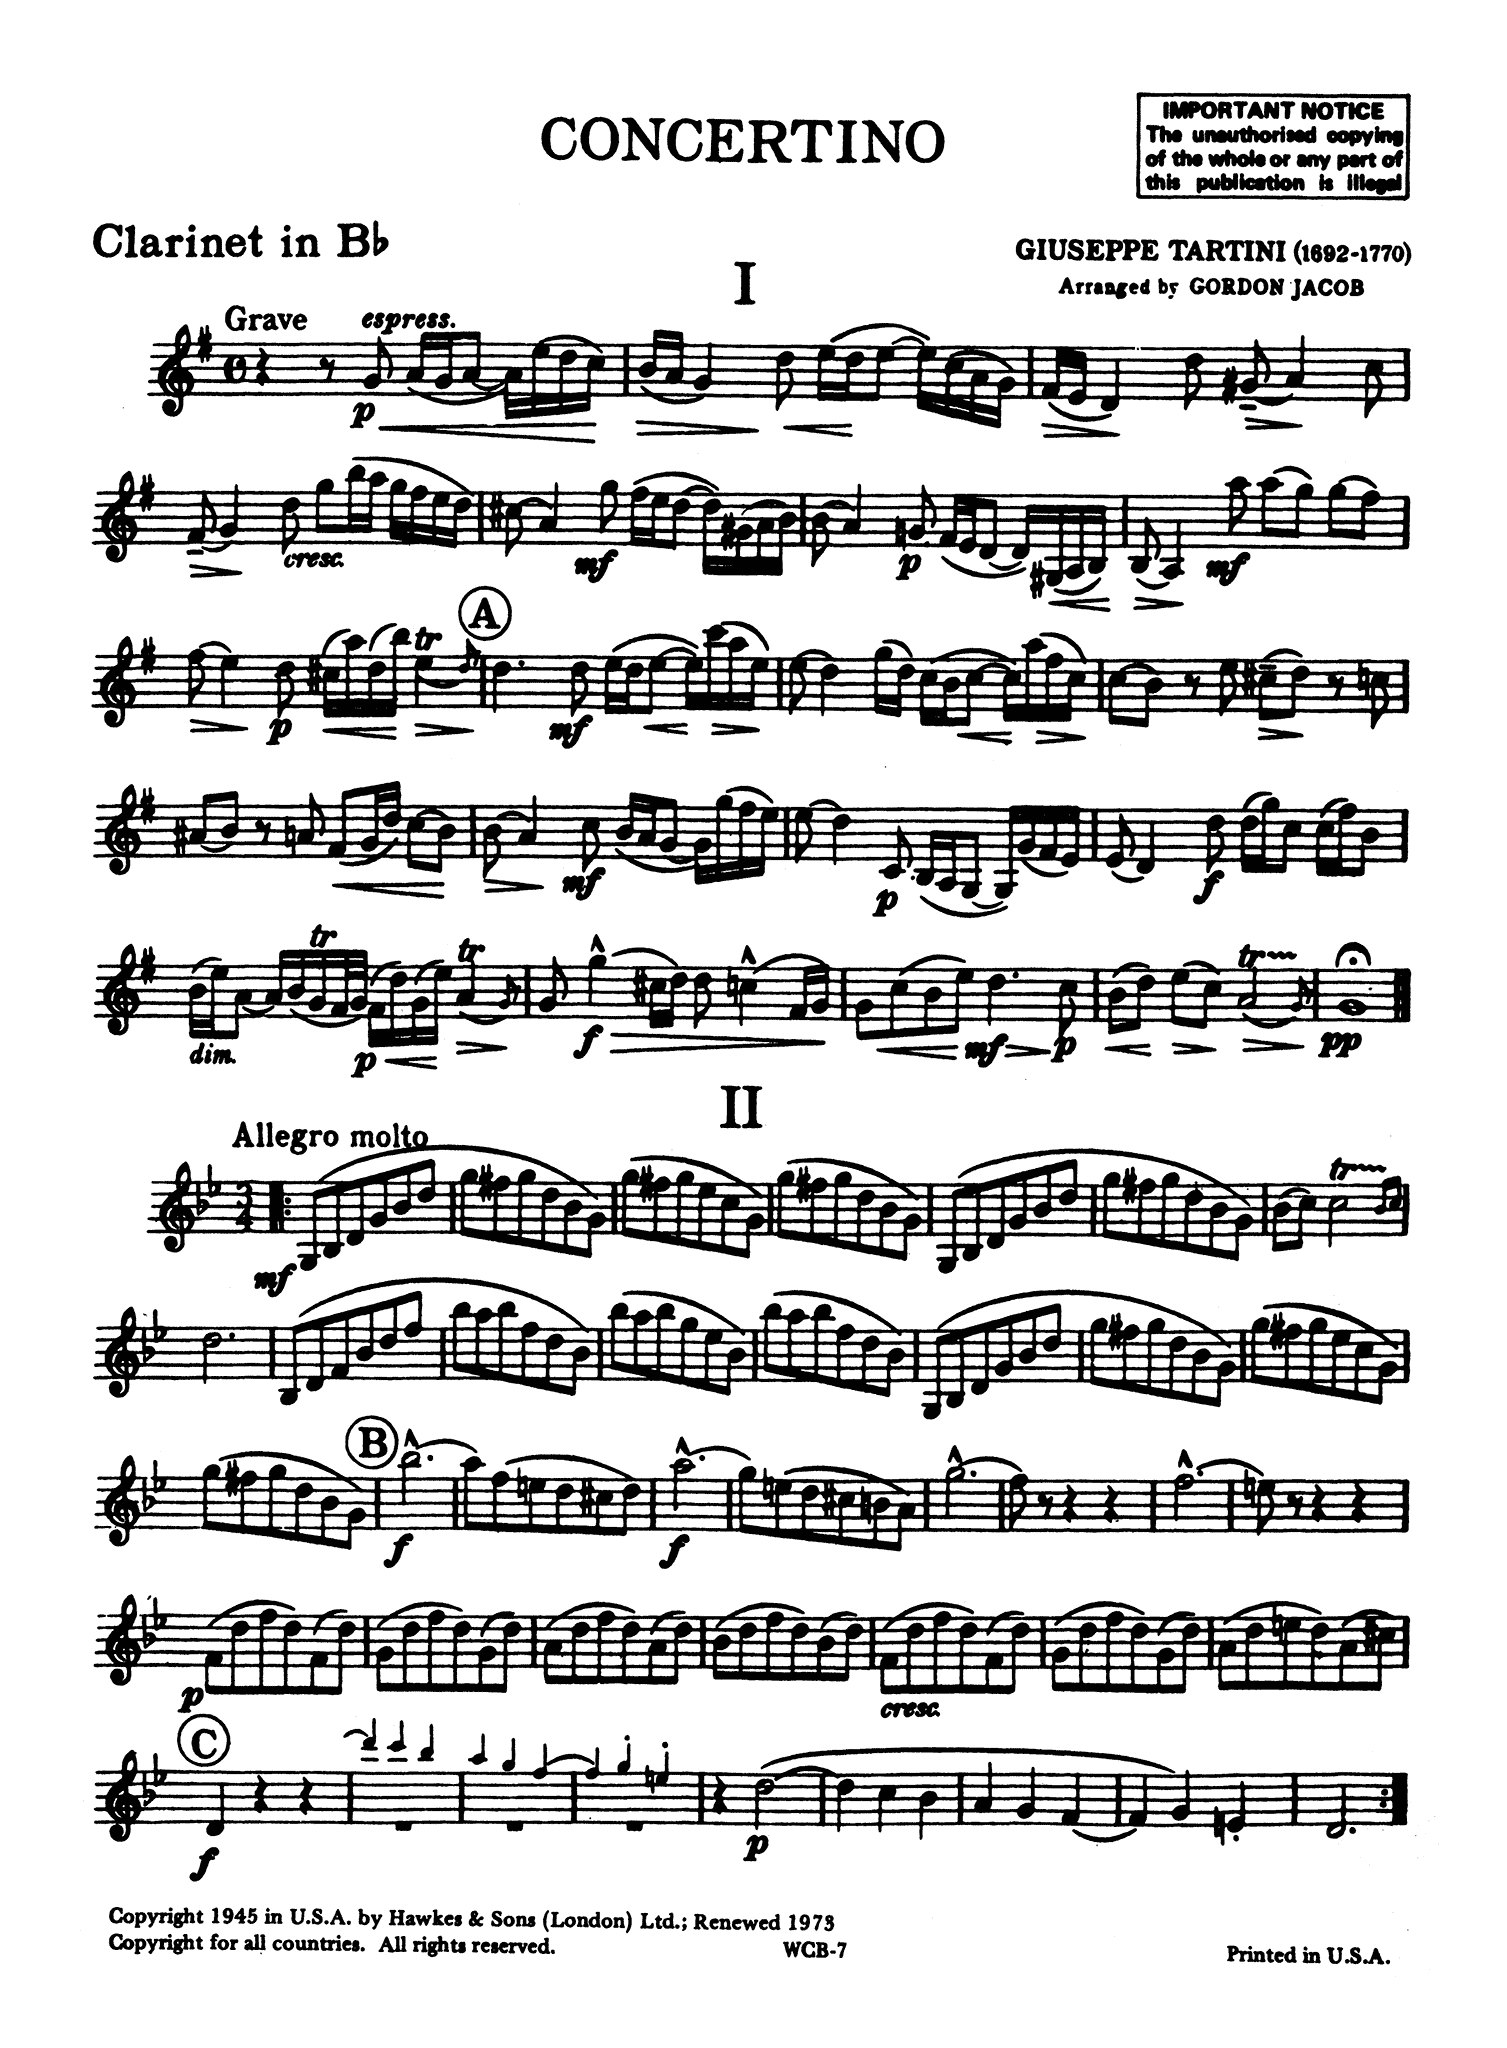 Tartini Jacob Concertino Clarinet part